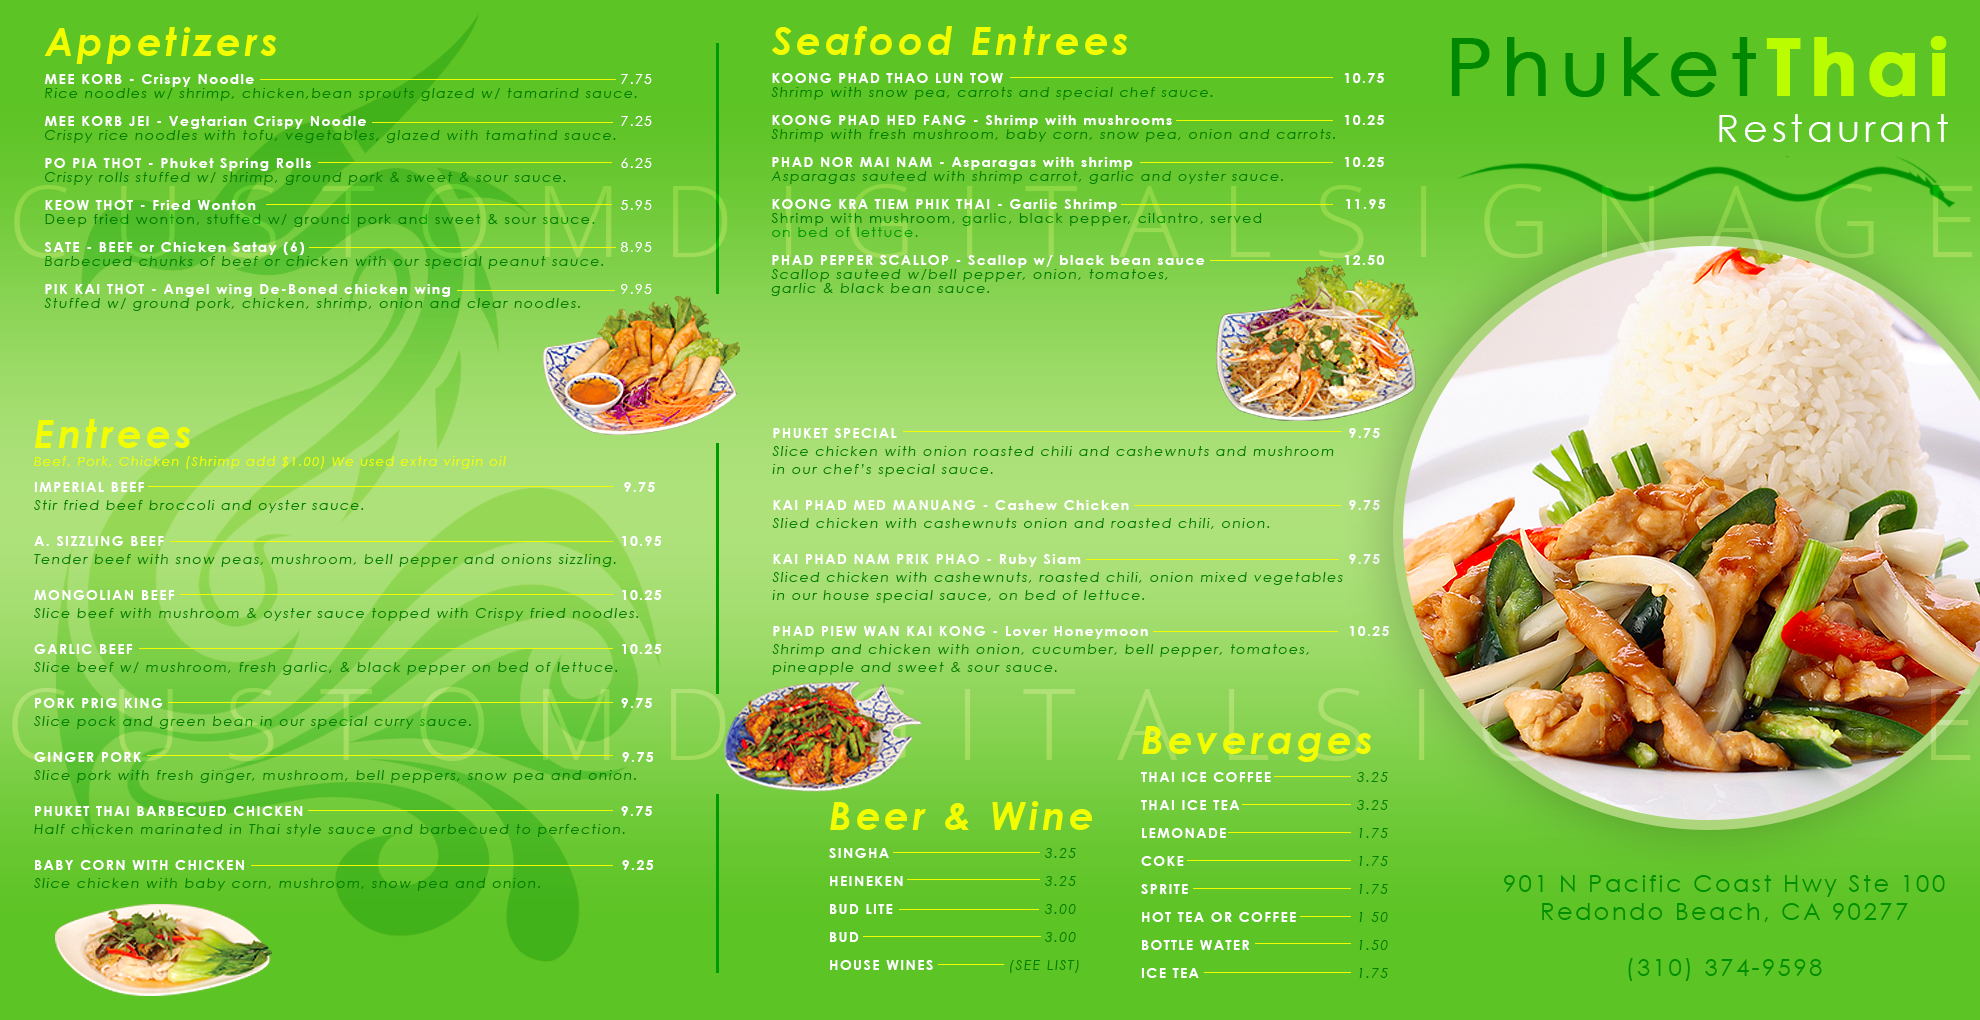 Digital menu board templates custom digital signage template thai restaurant digital menu 2 maxwellsz